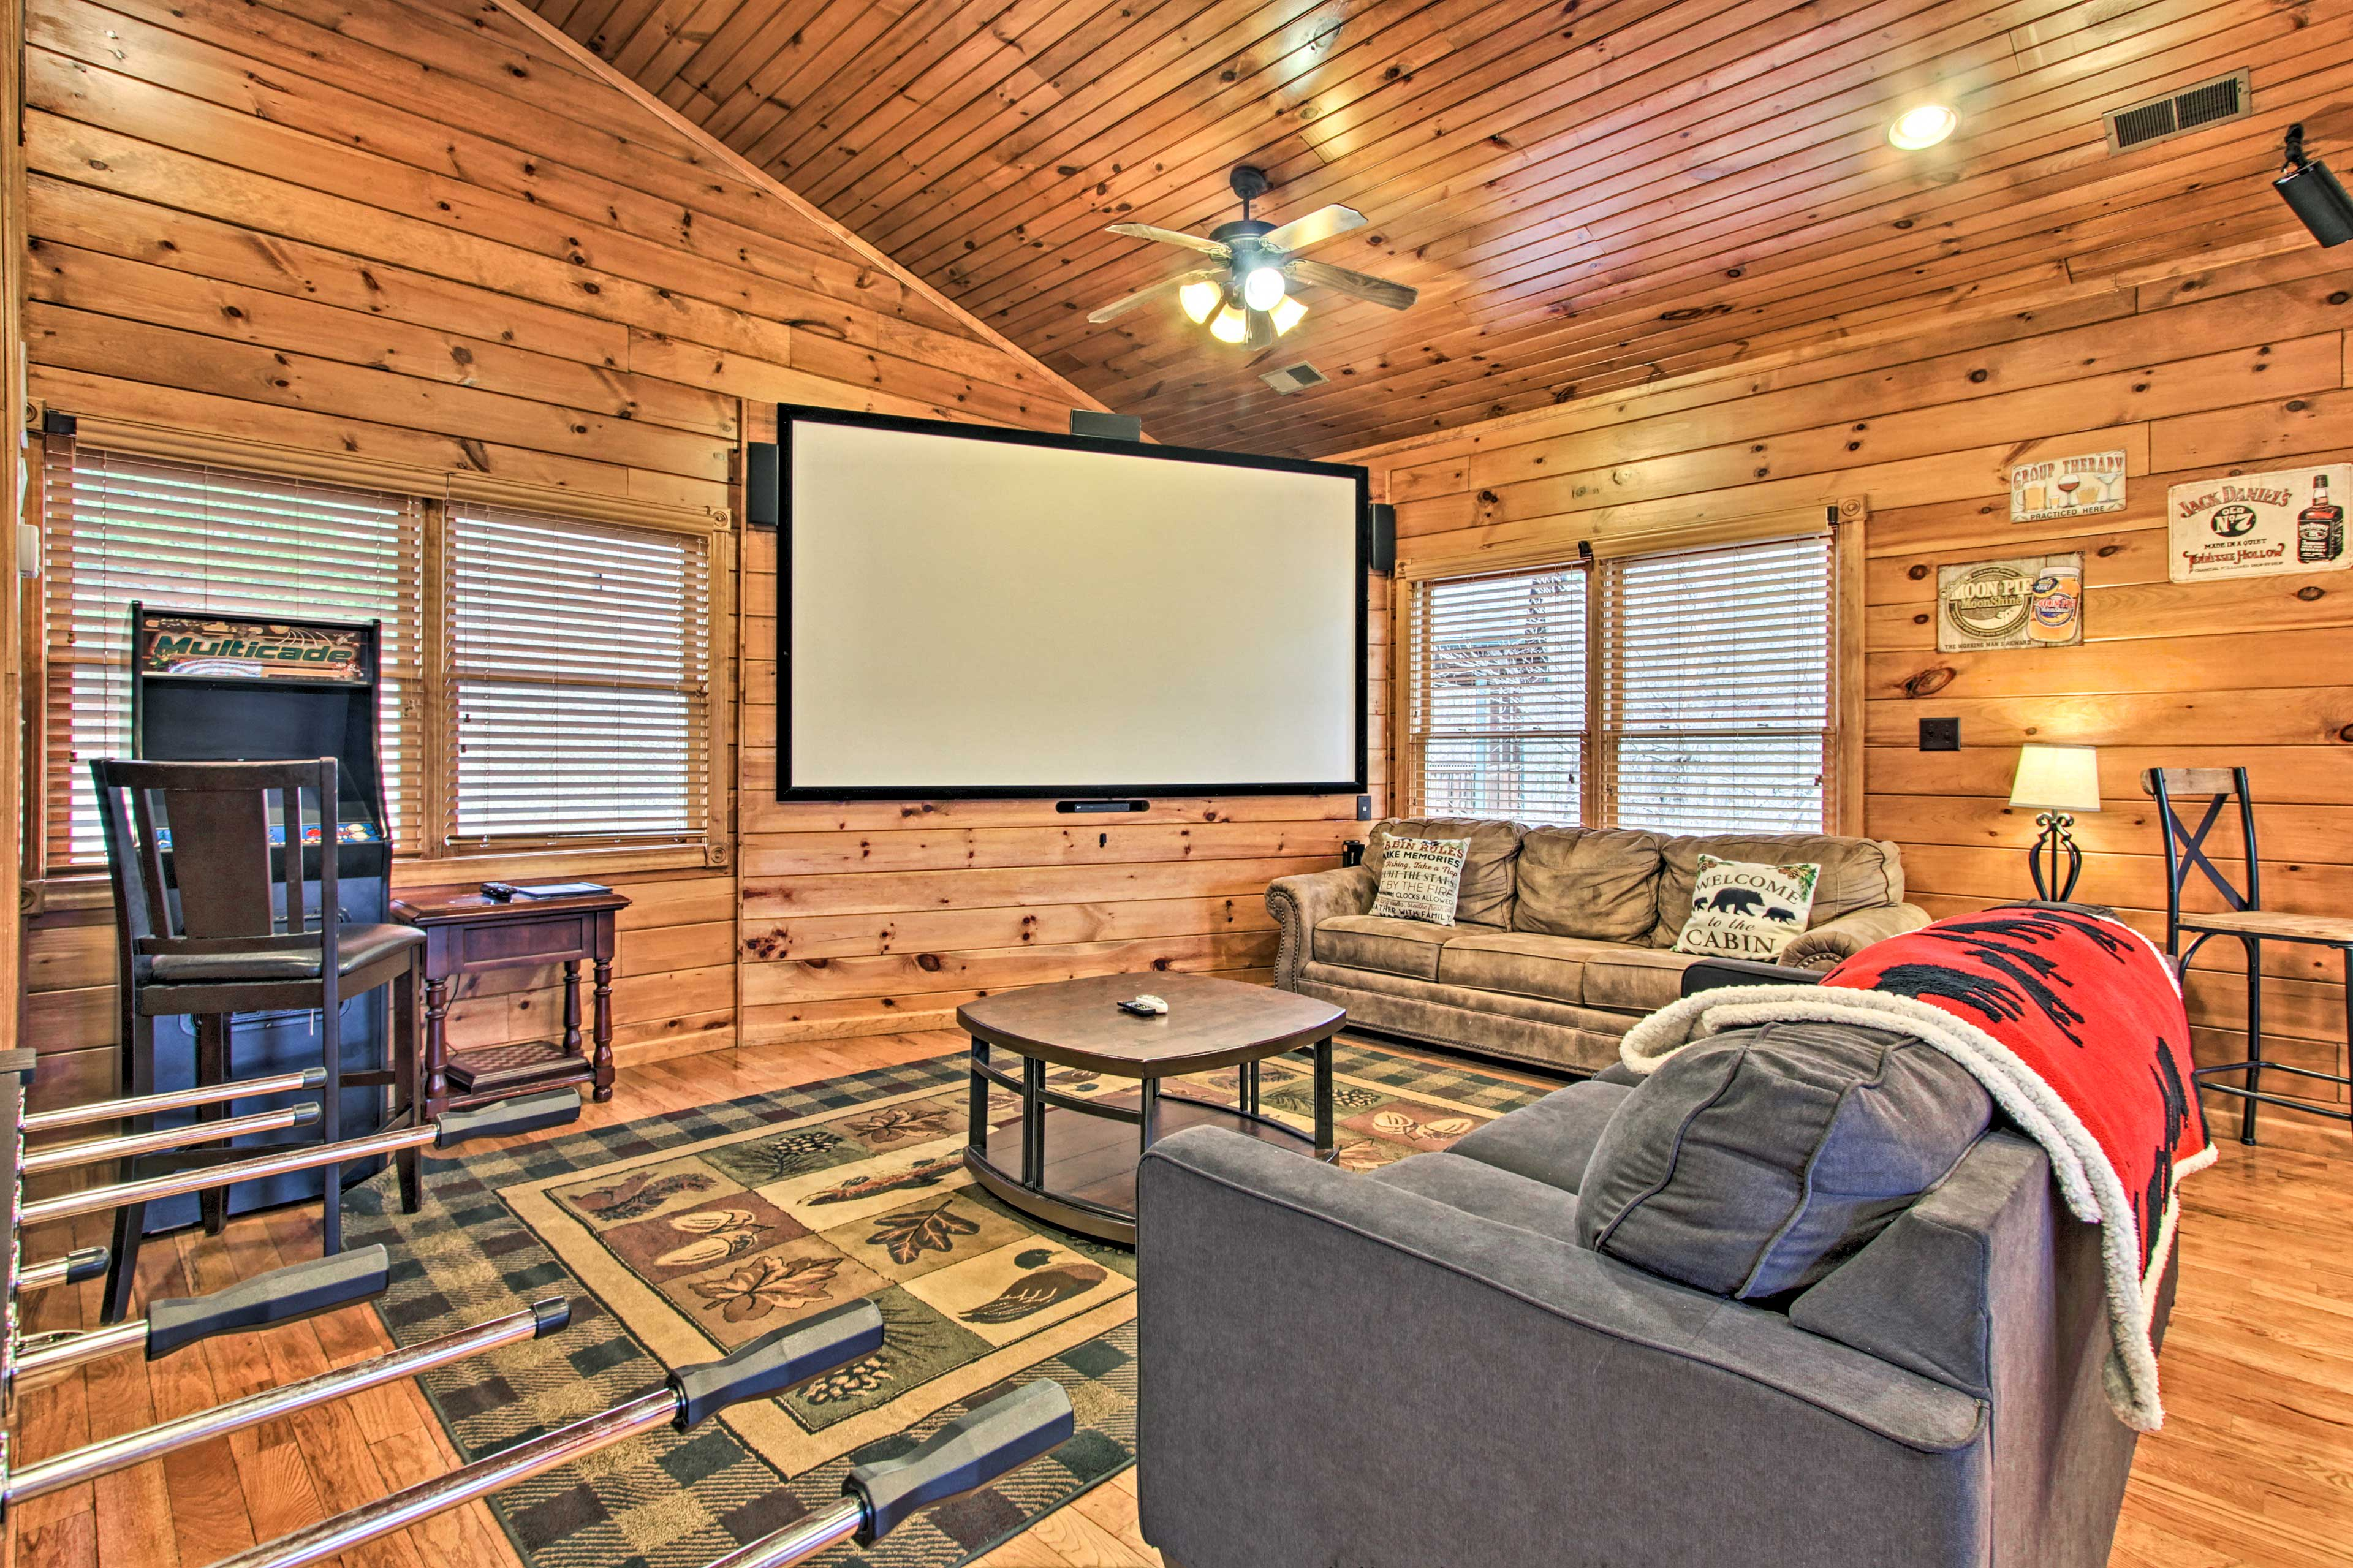 Plan a movie night on the projection screen!